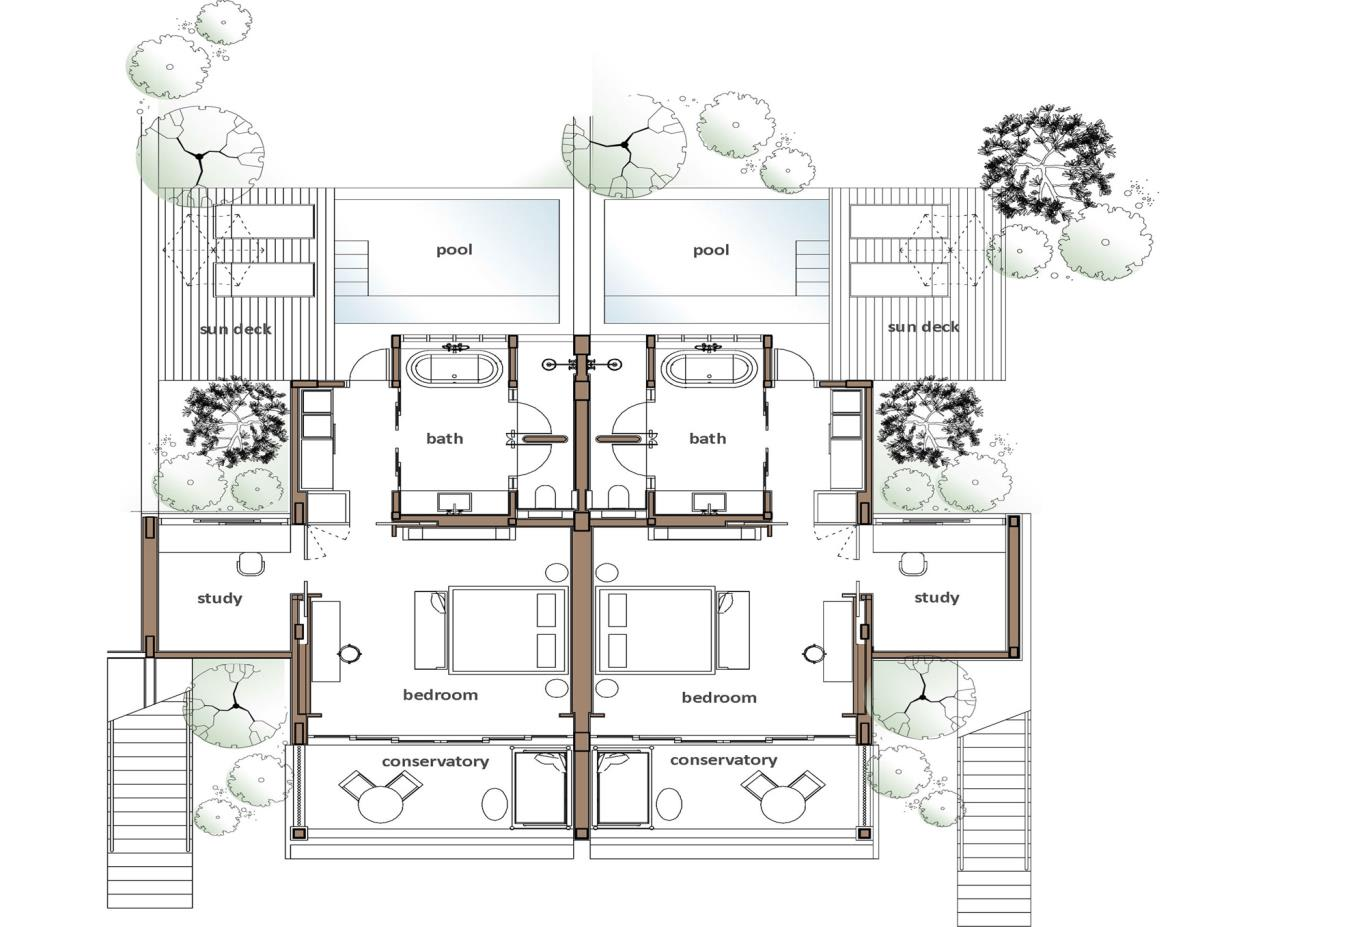 Floorplan-Pool-suite